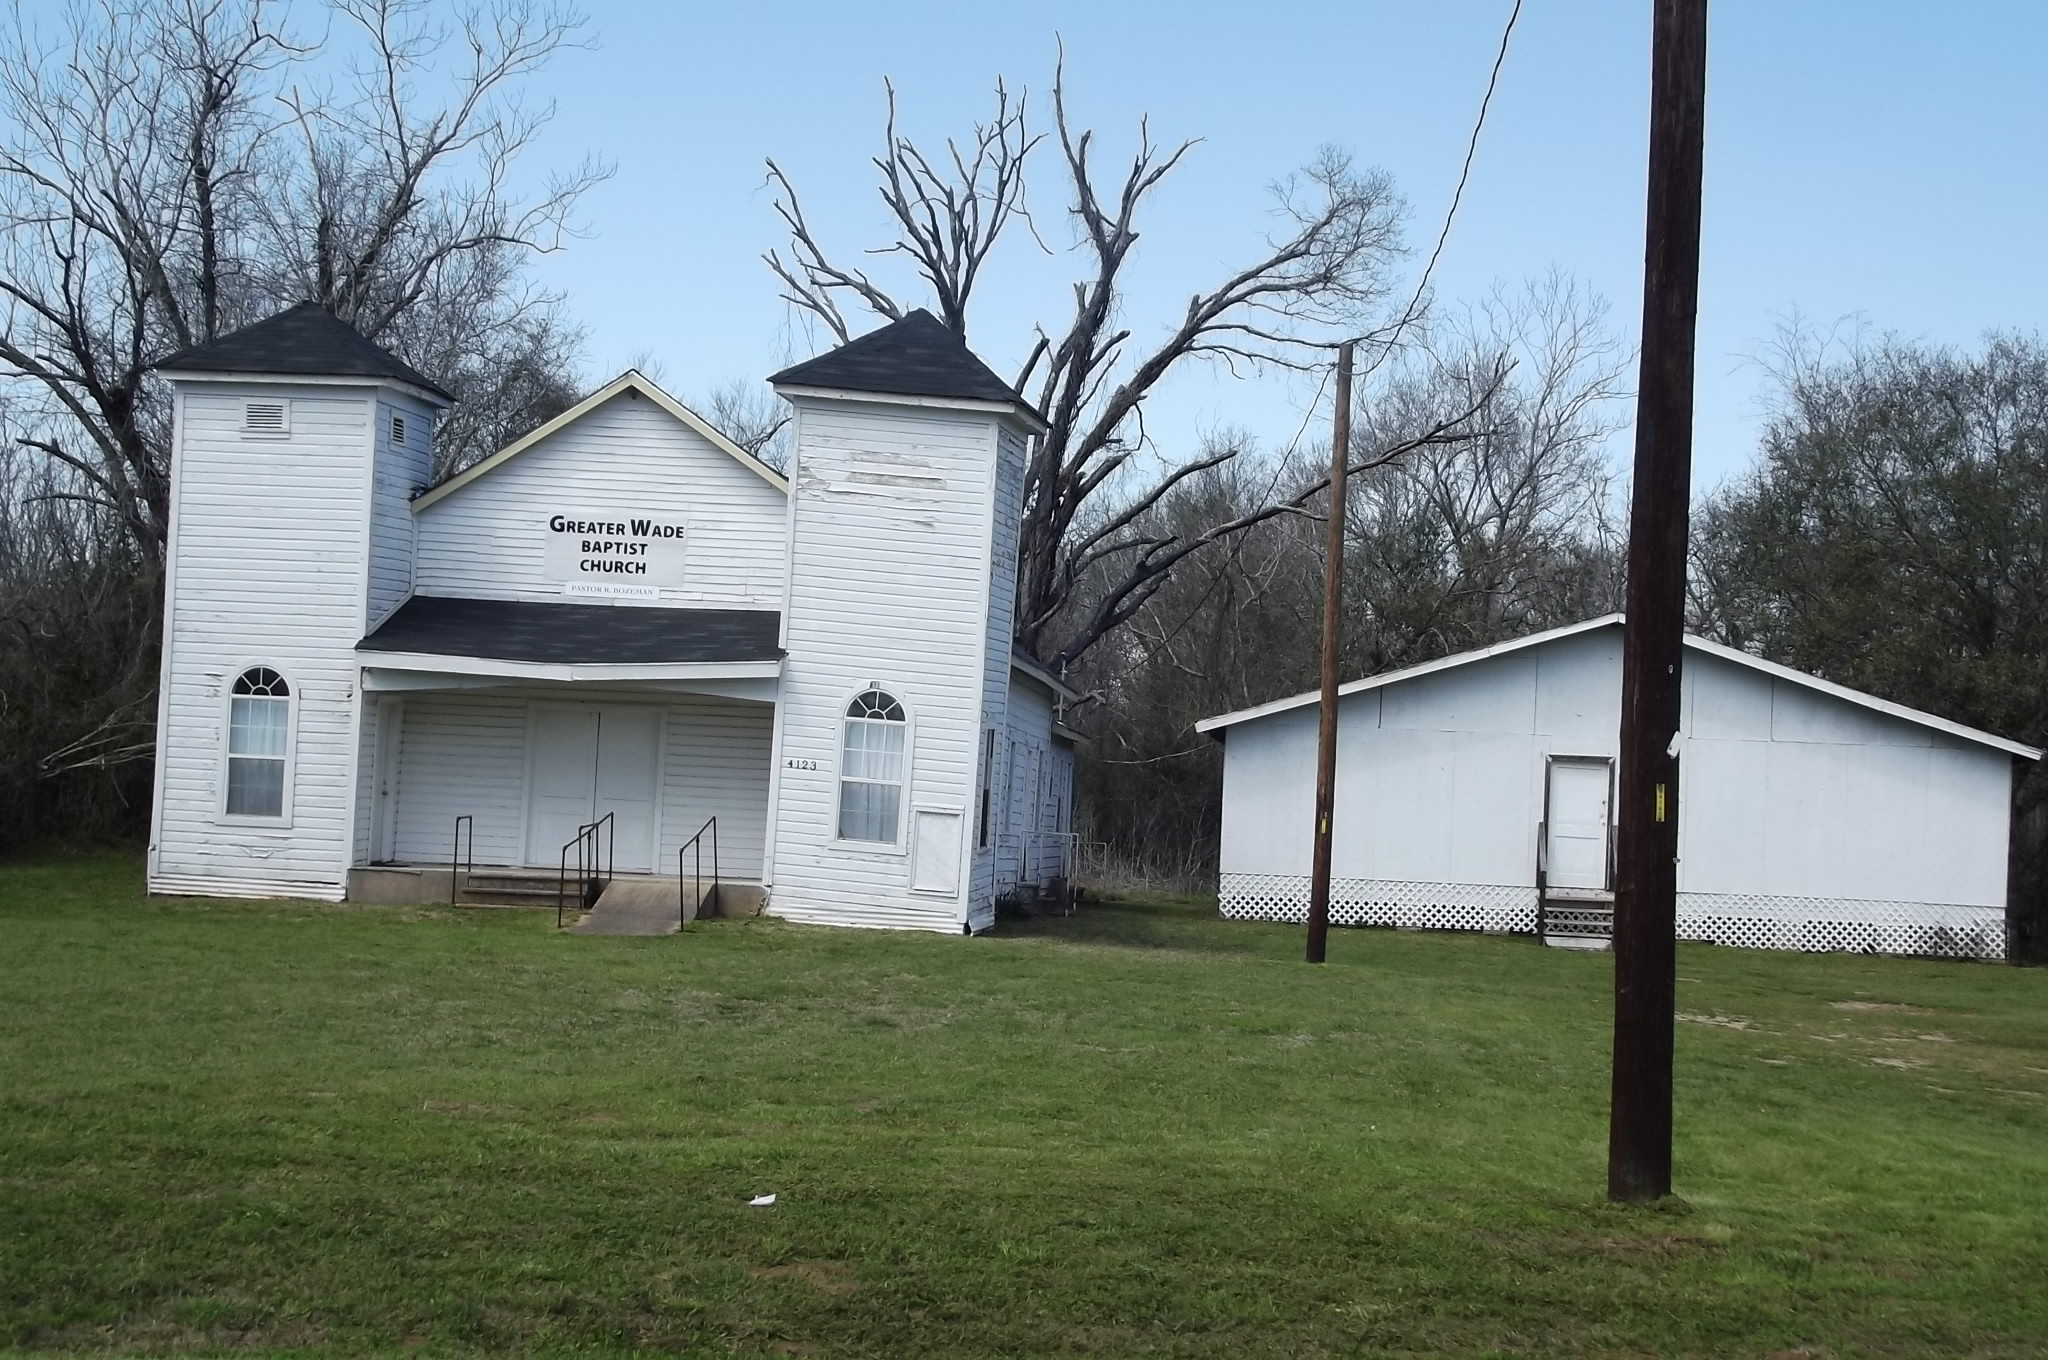 Greater Wade Baptist Church